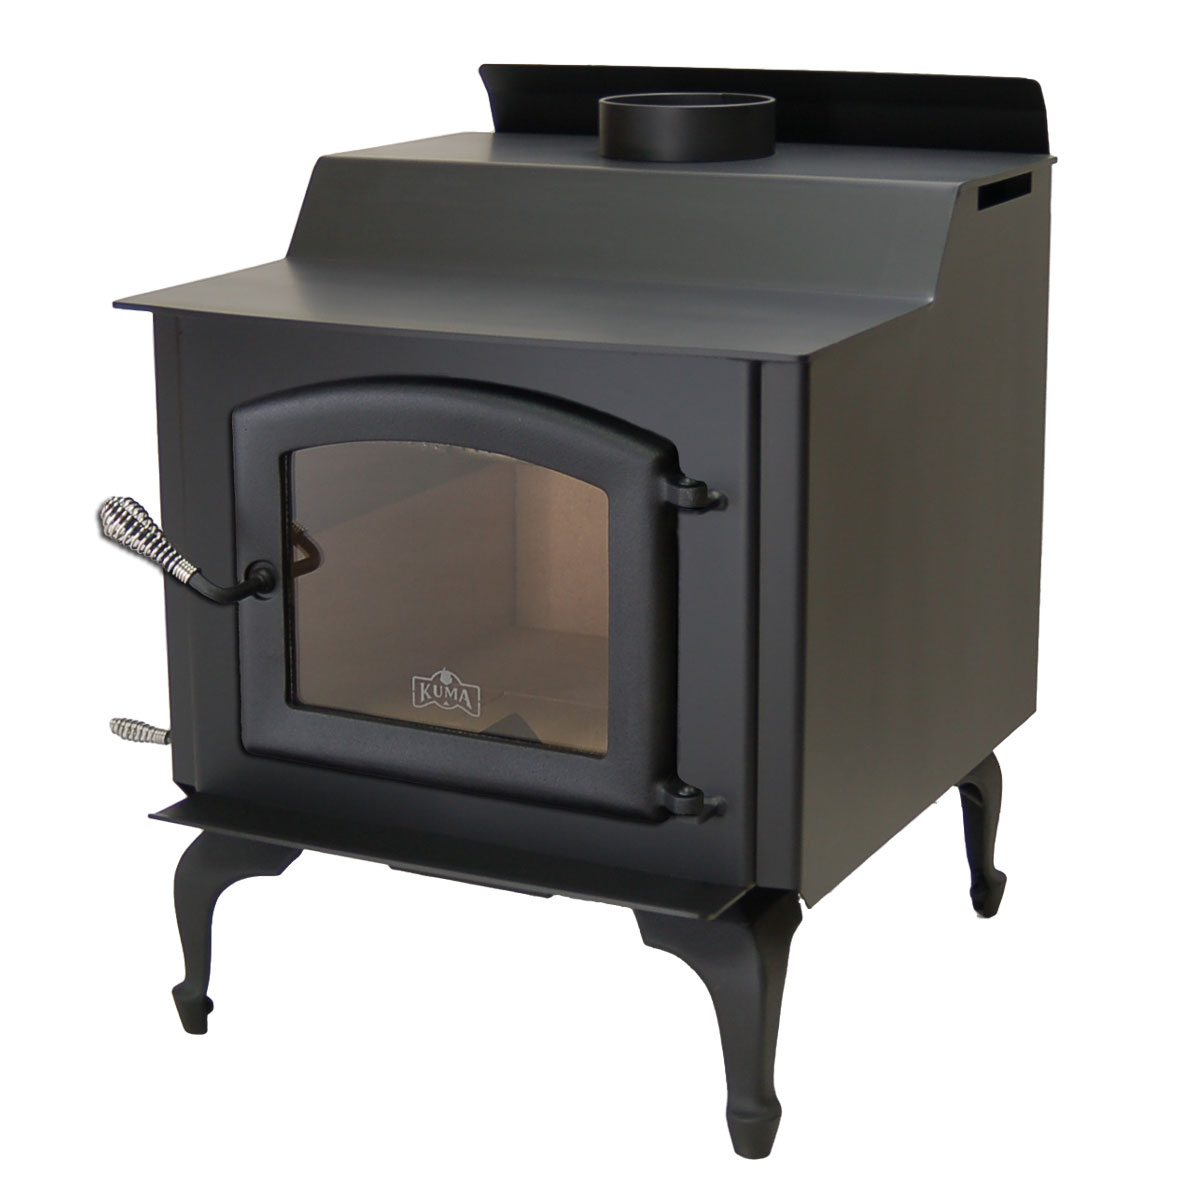 Kuma Wood Classic wood stove with cast legs and black door - Wood Classic Wood Stove And Fireplace From Kuma Stoves